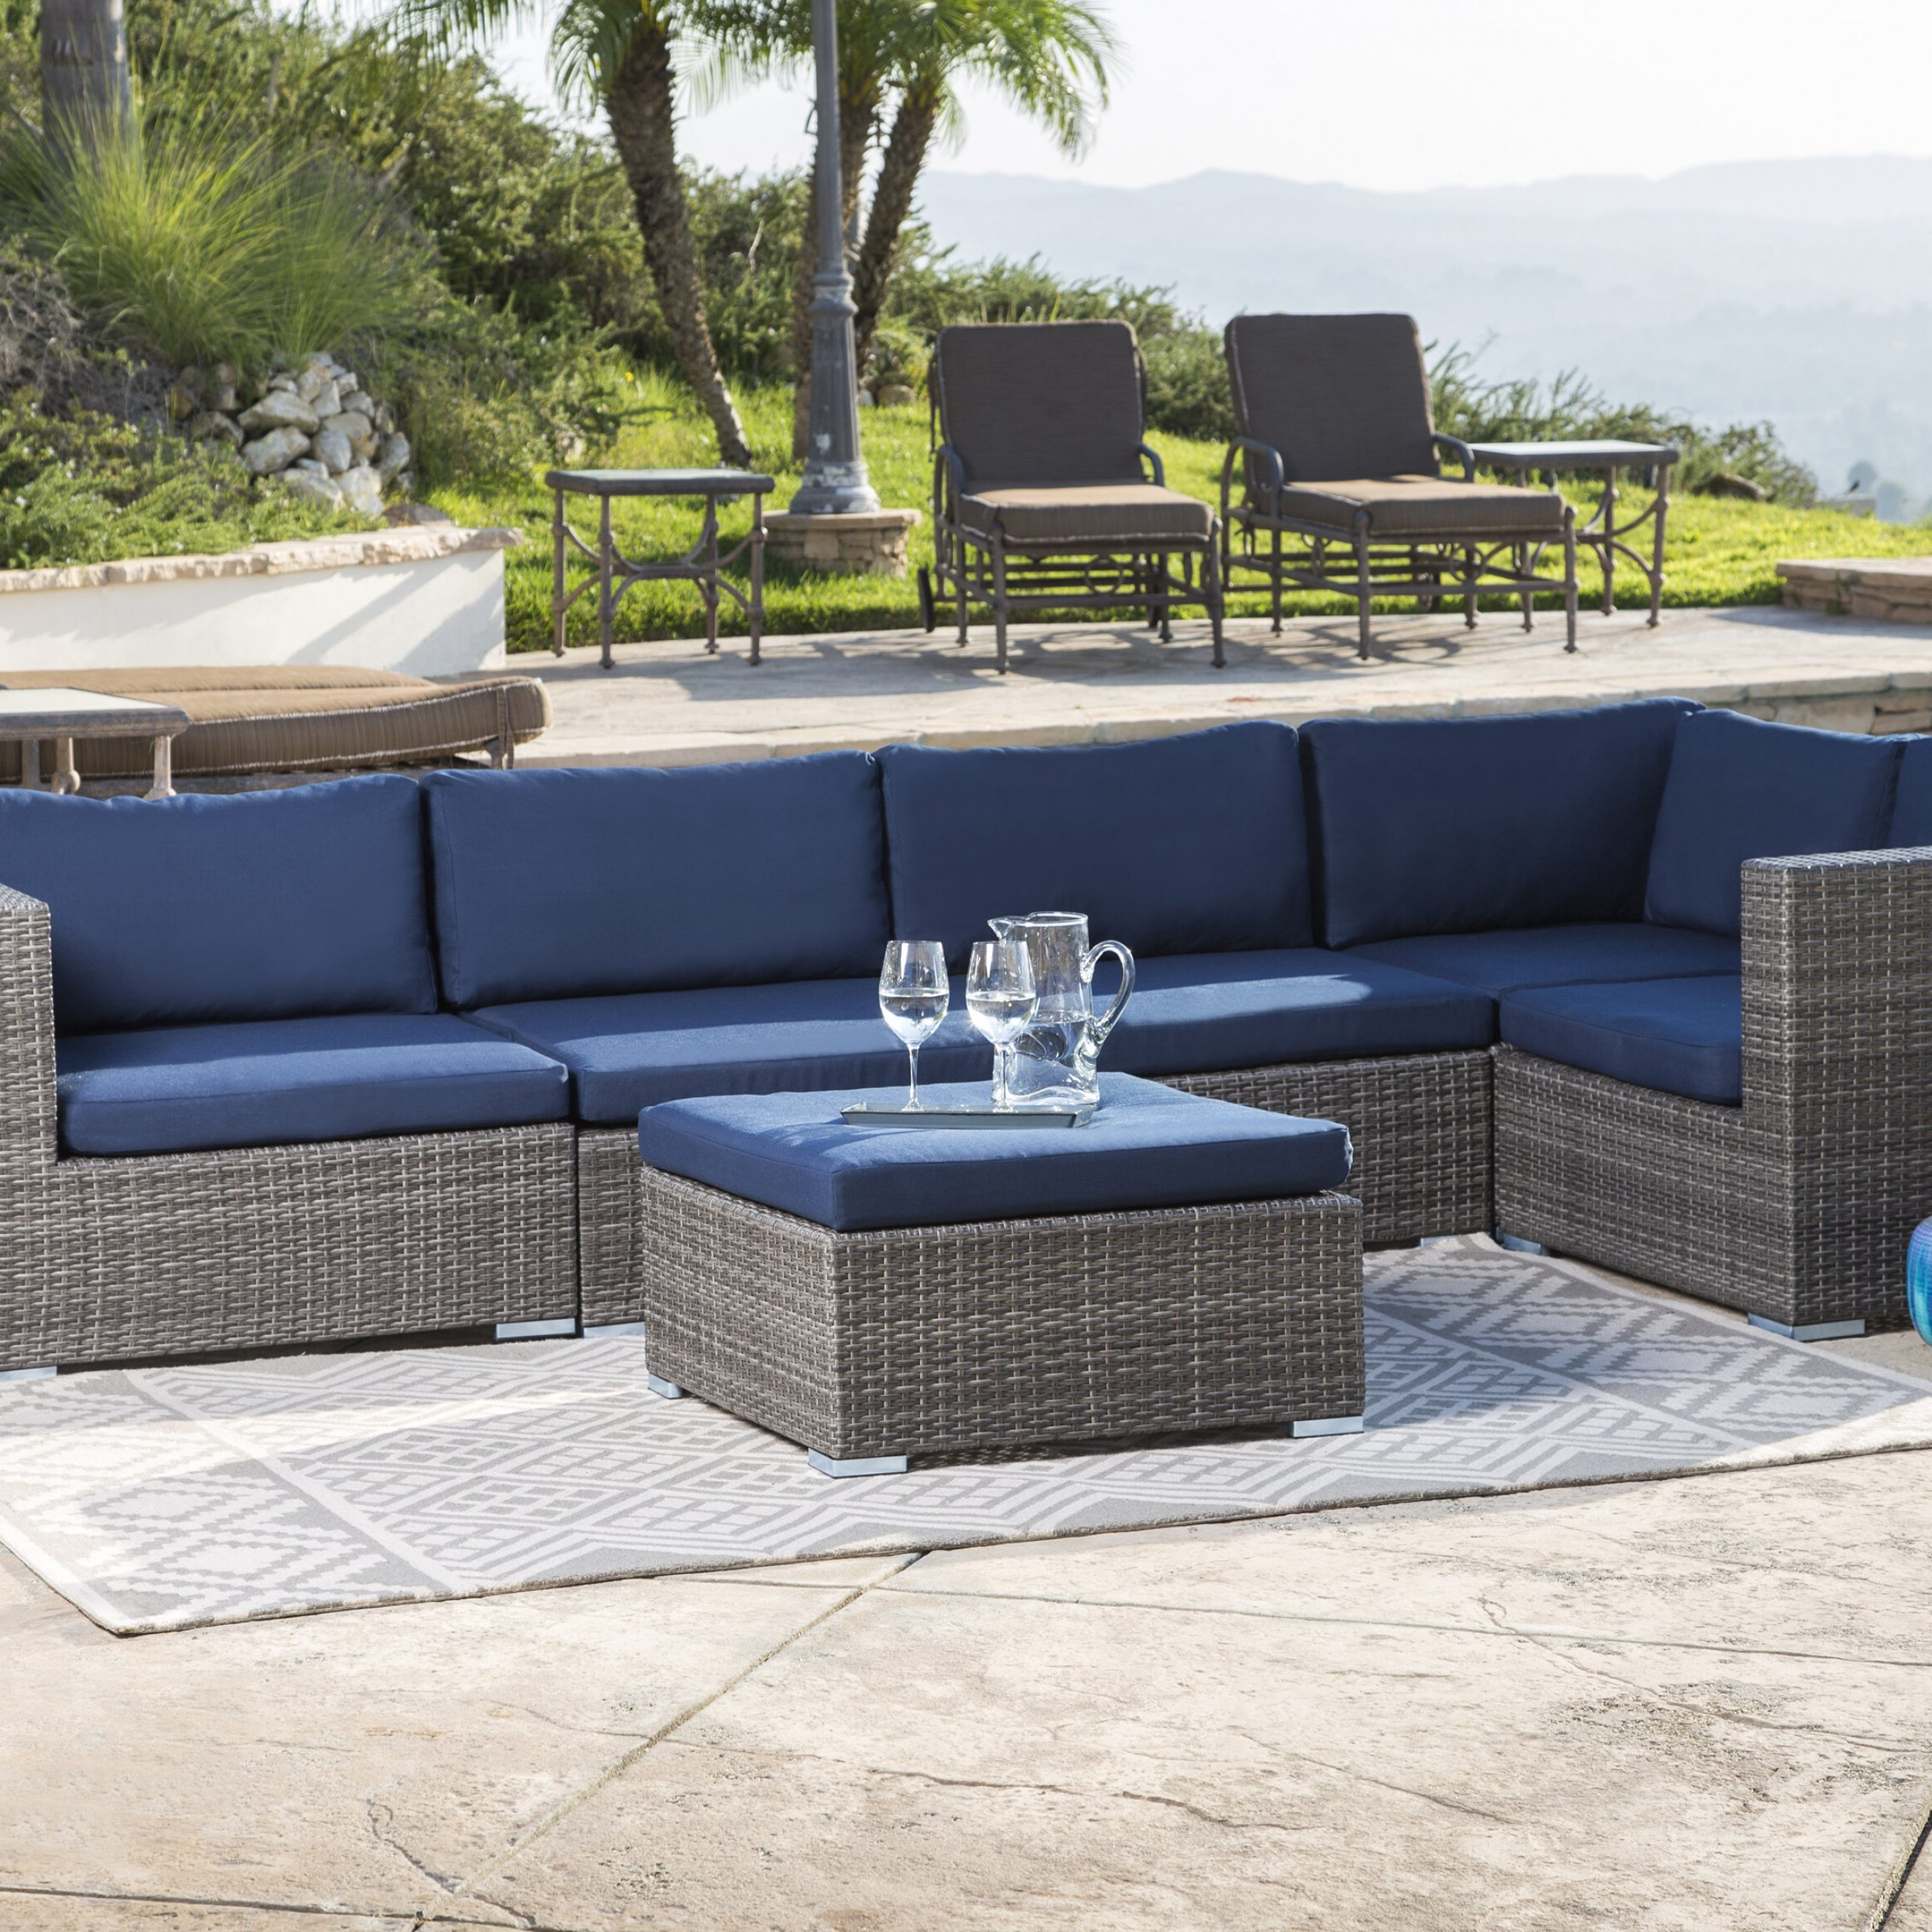 Latest Ostrowski Patio Sectional With Cushions With Regard To Letona Patio Sectionals With Cushions (Gallery 5 of 25)